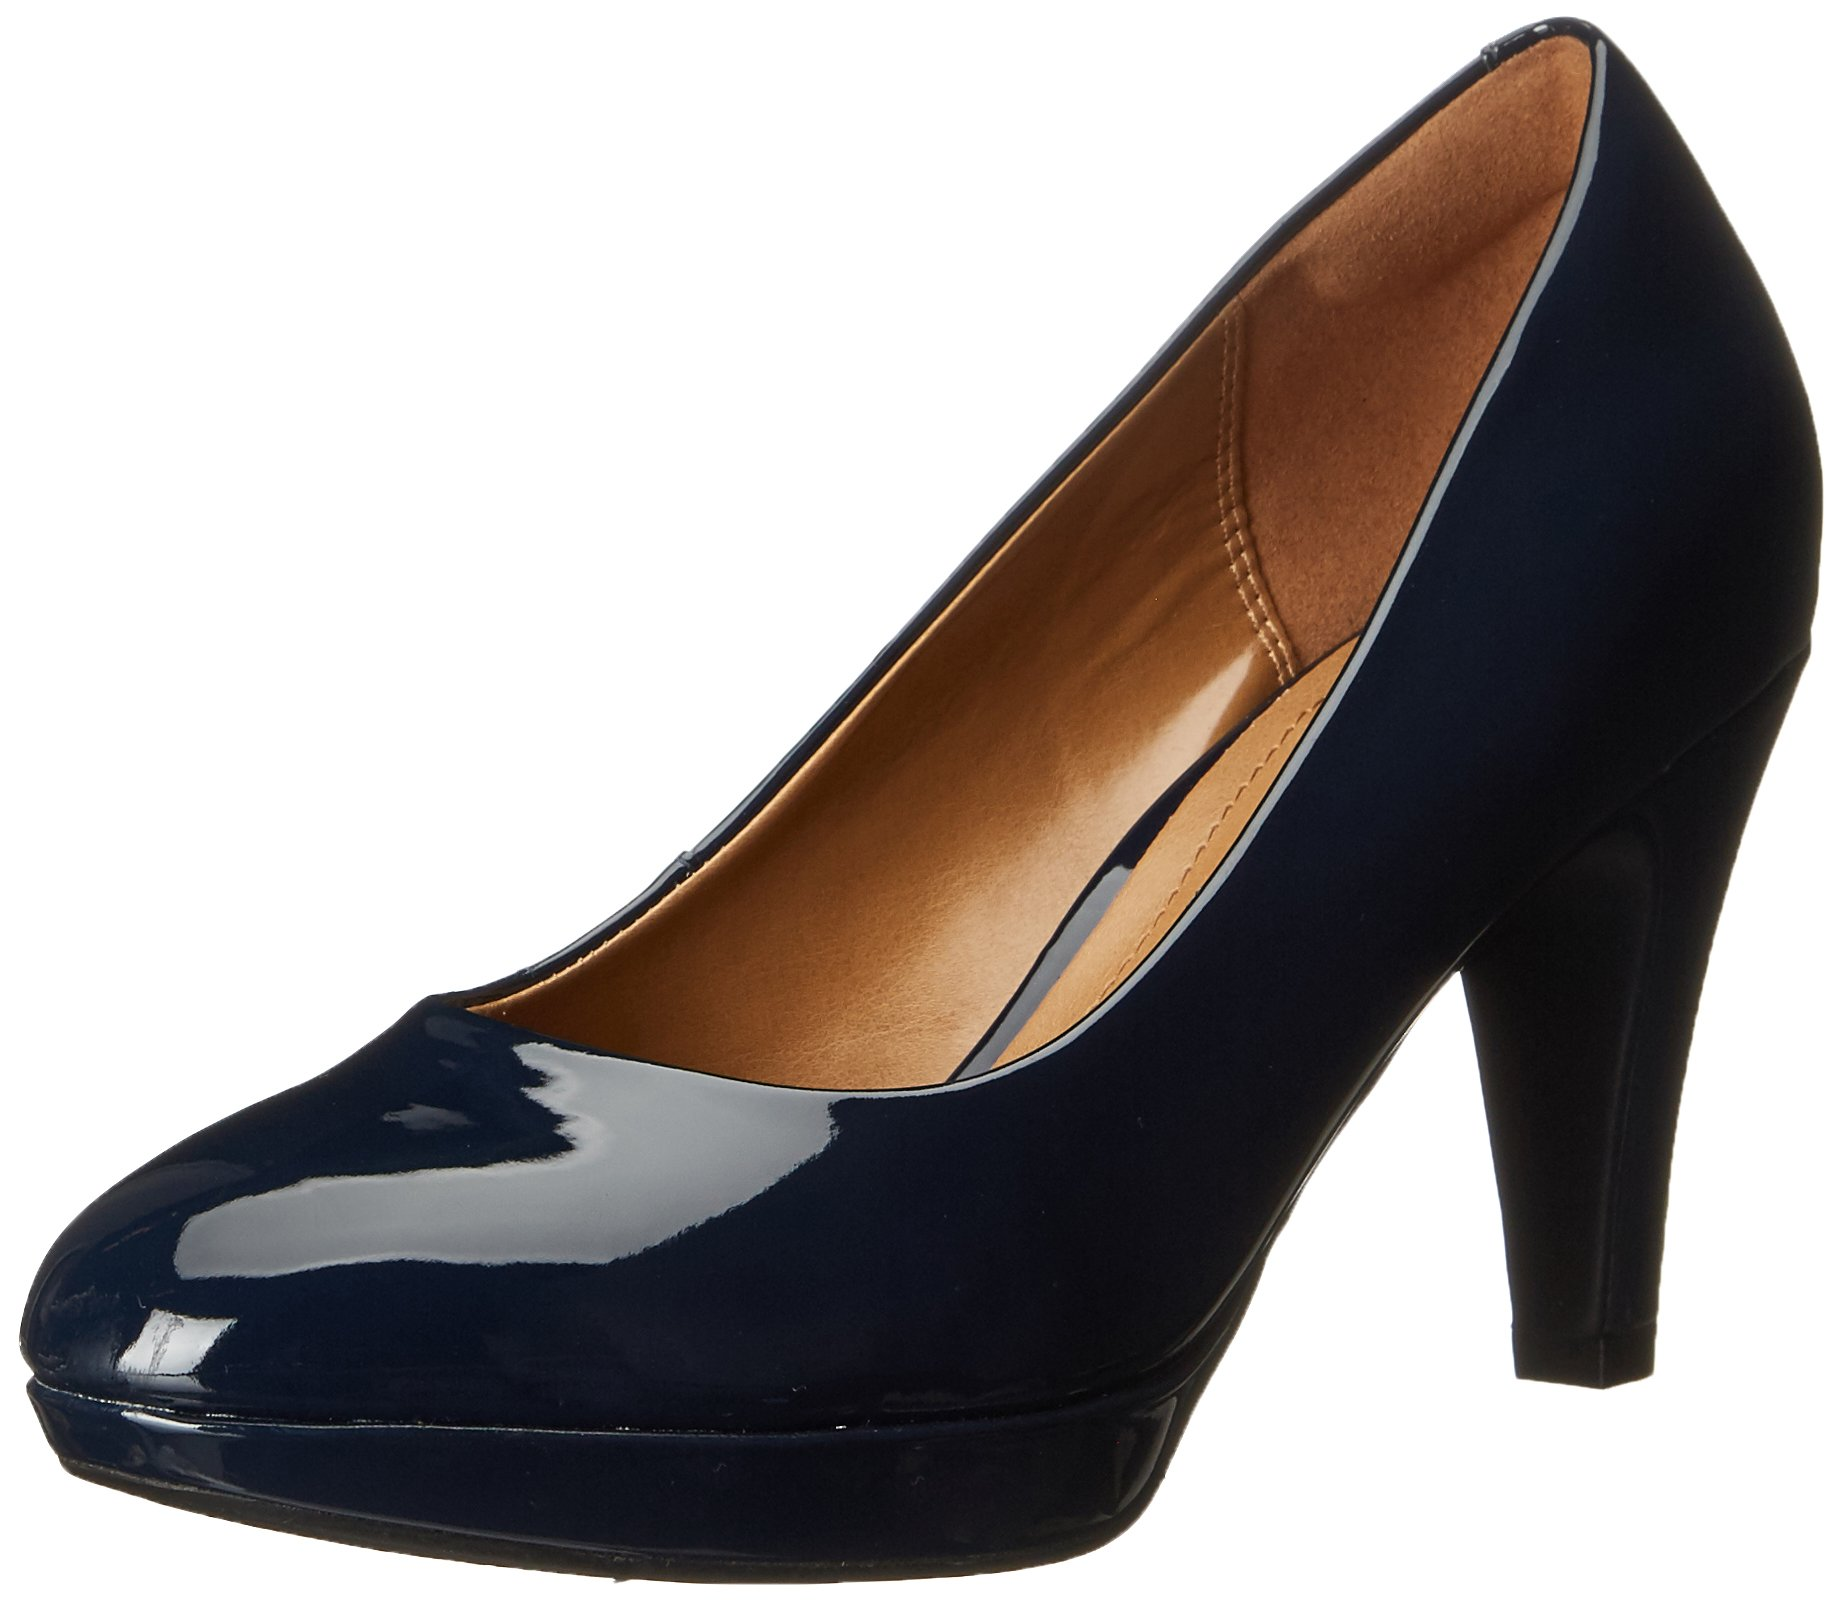 CLARKS Women's Brier Dolly Platform Pump, Navy, 11 W US